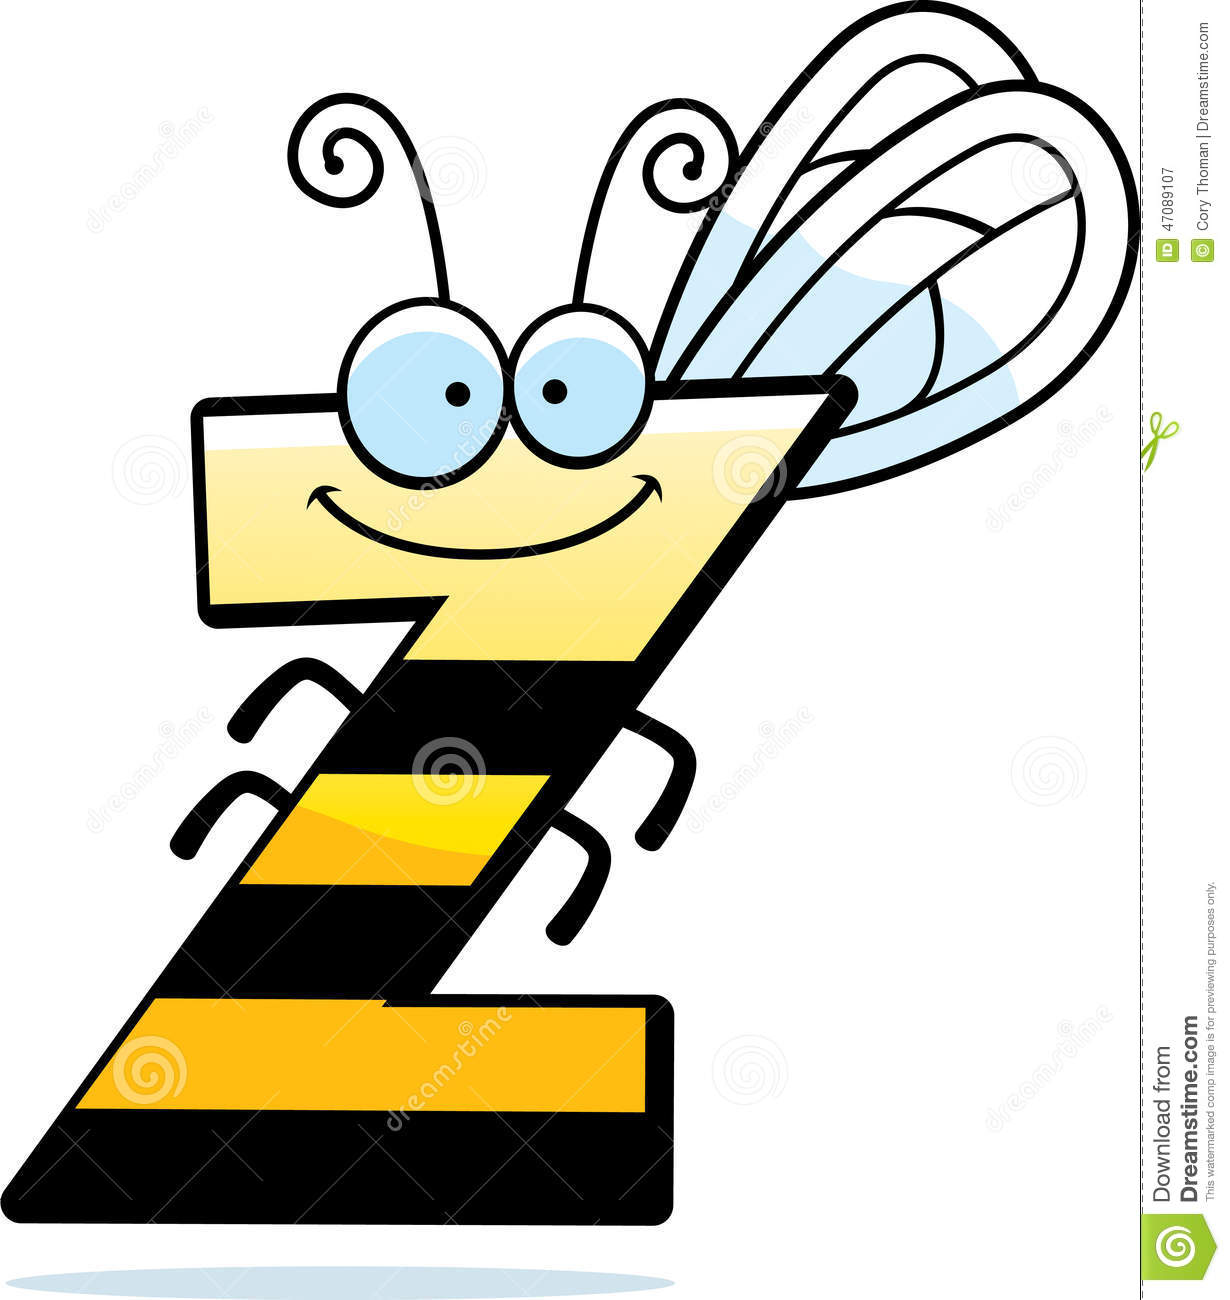 cartoon letter z bug stock vector. illustration of clipart - 47089107